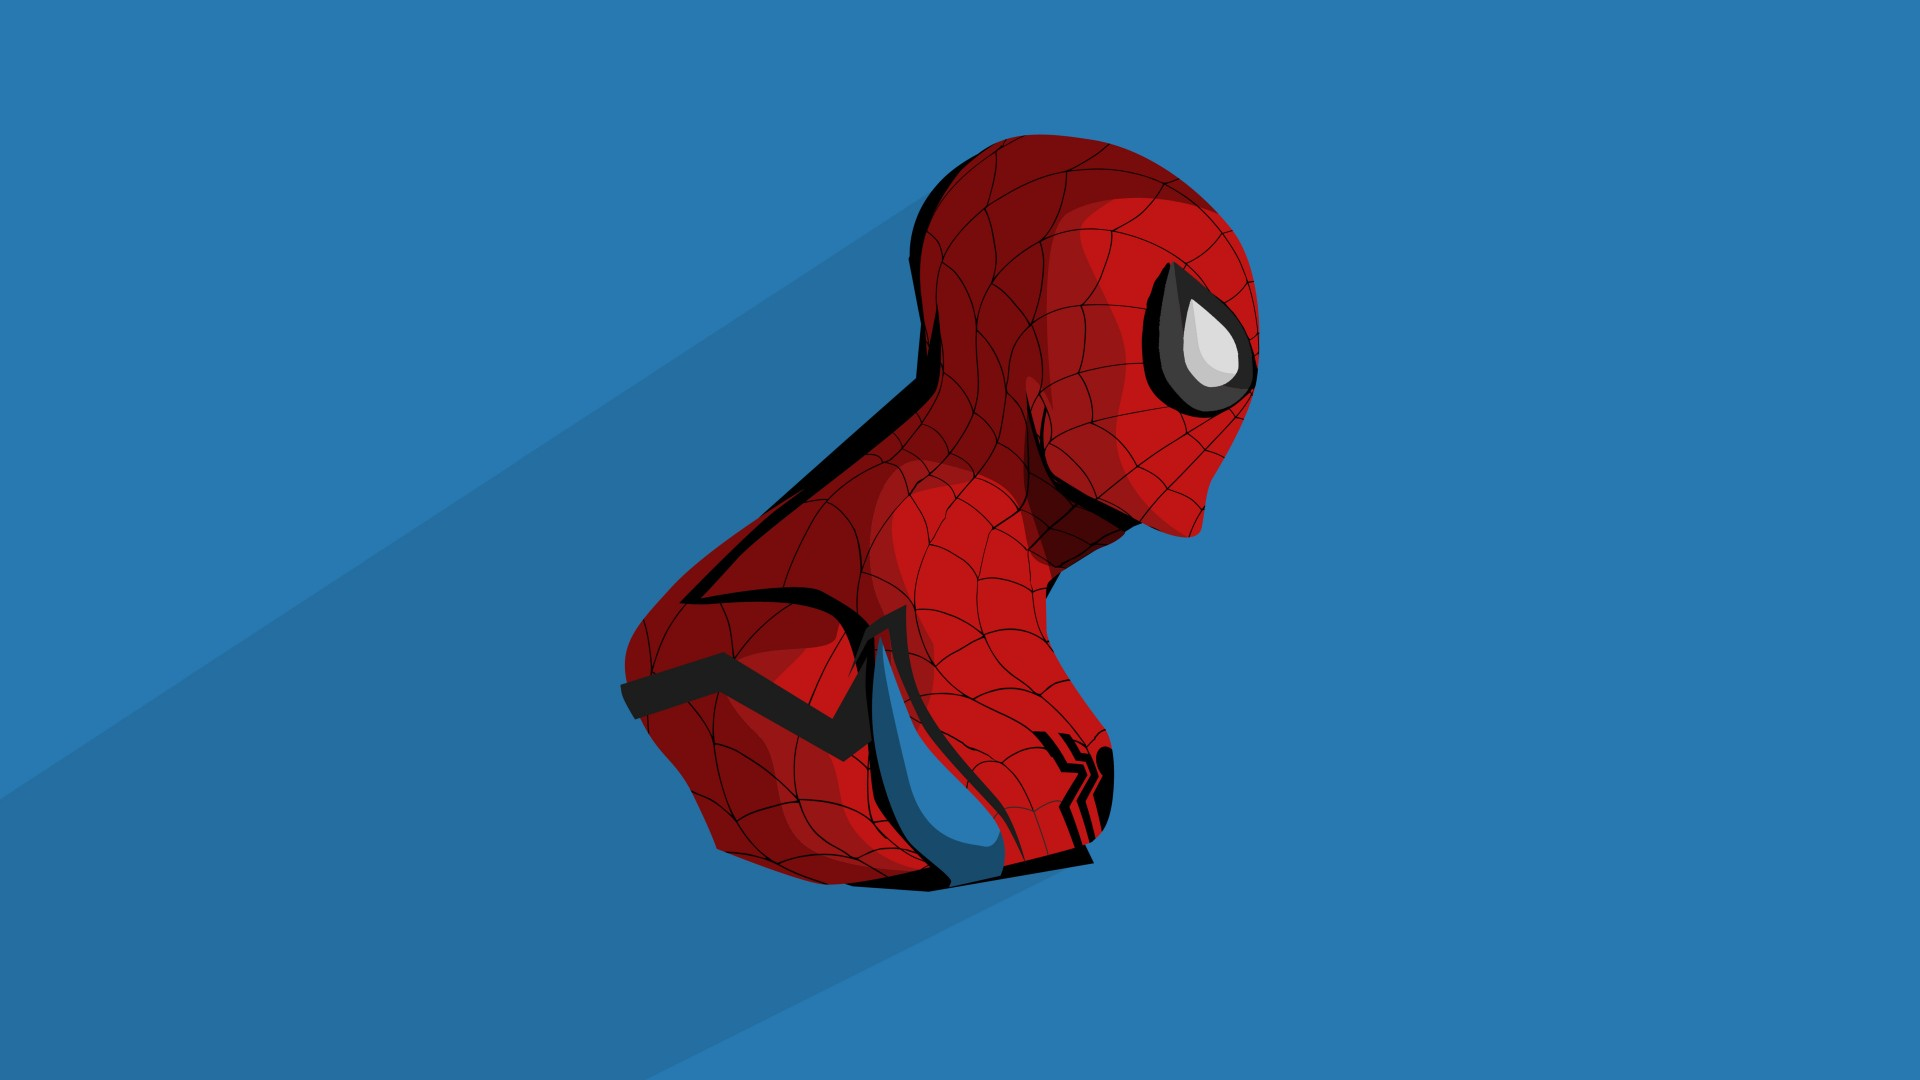 3d Animated Wallpaper Windows 10 Spider Man Minimal Artwork 4k Wallpapers Hd Wallpapers